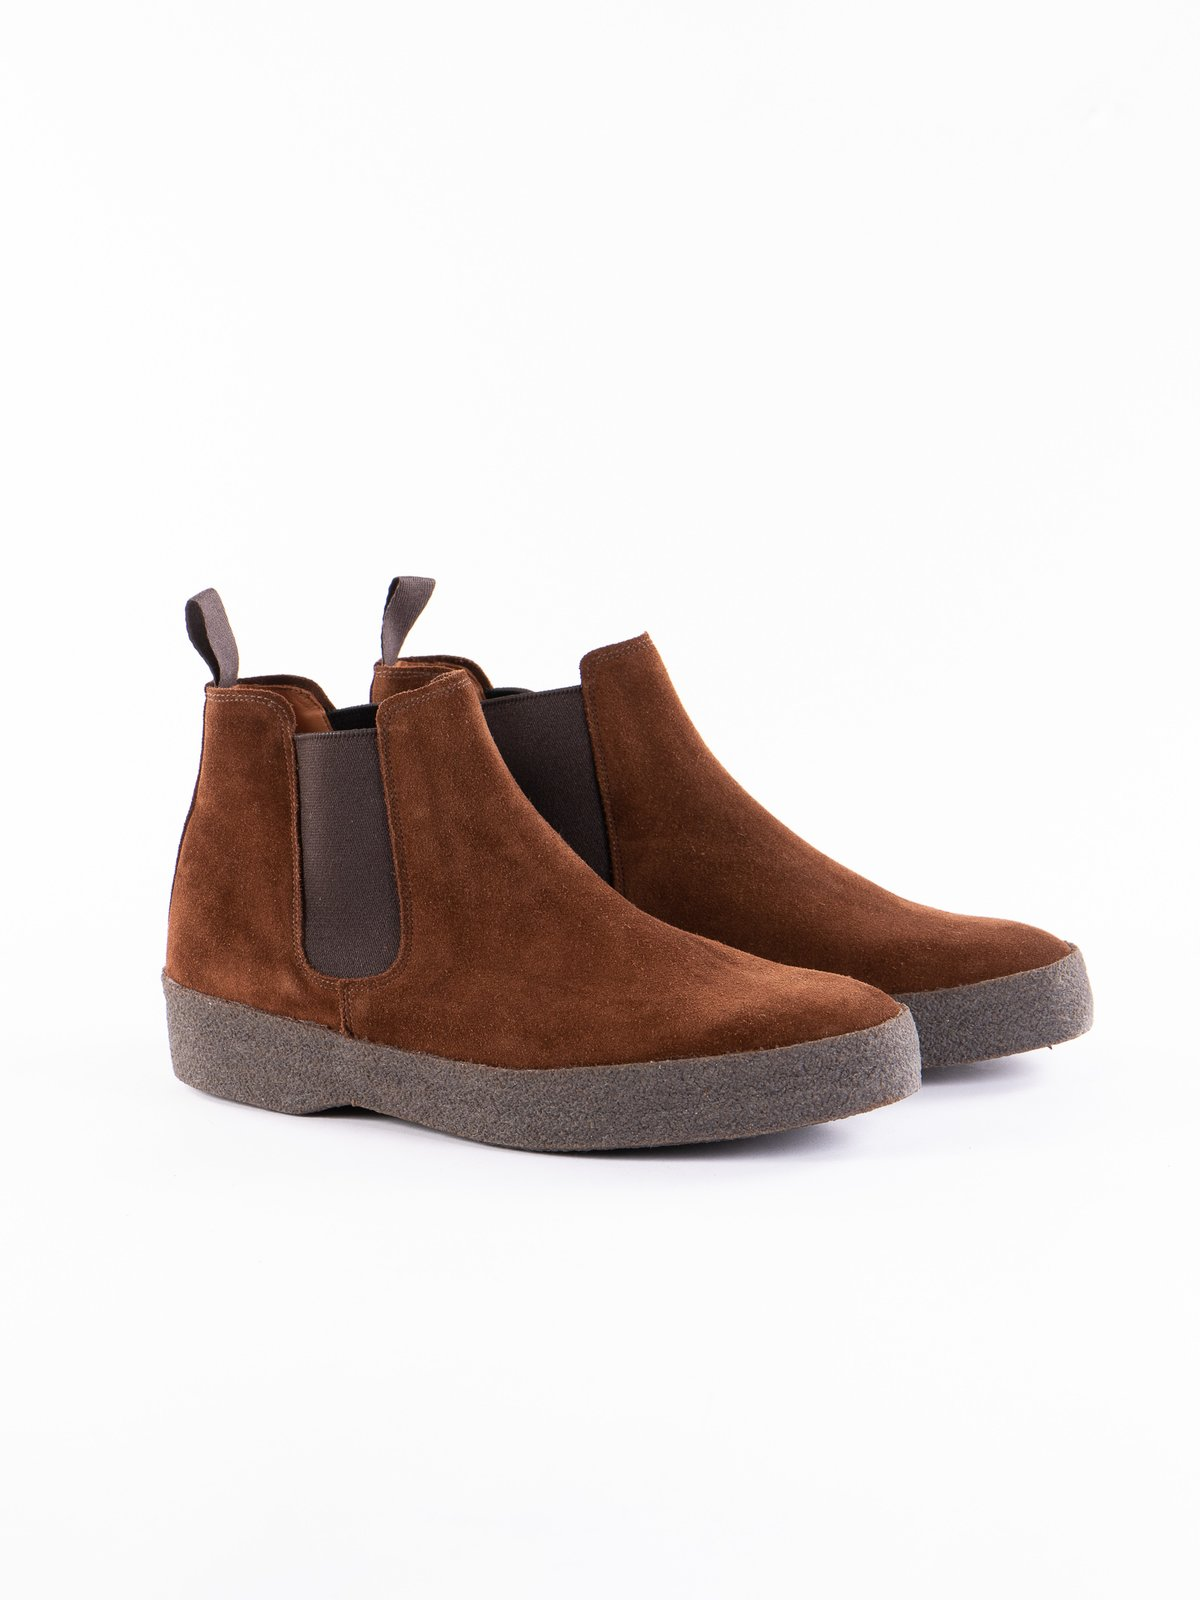 Polo Snuff Suede Chelsea Boot - Image 1